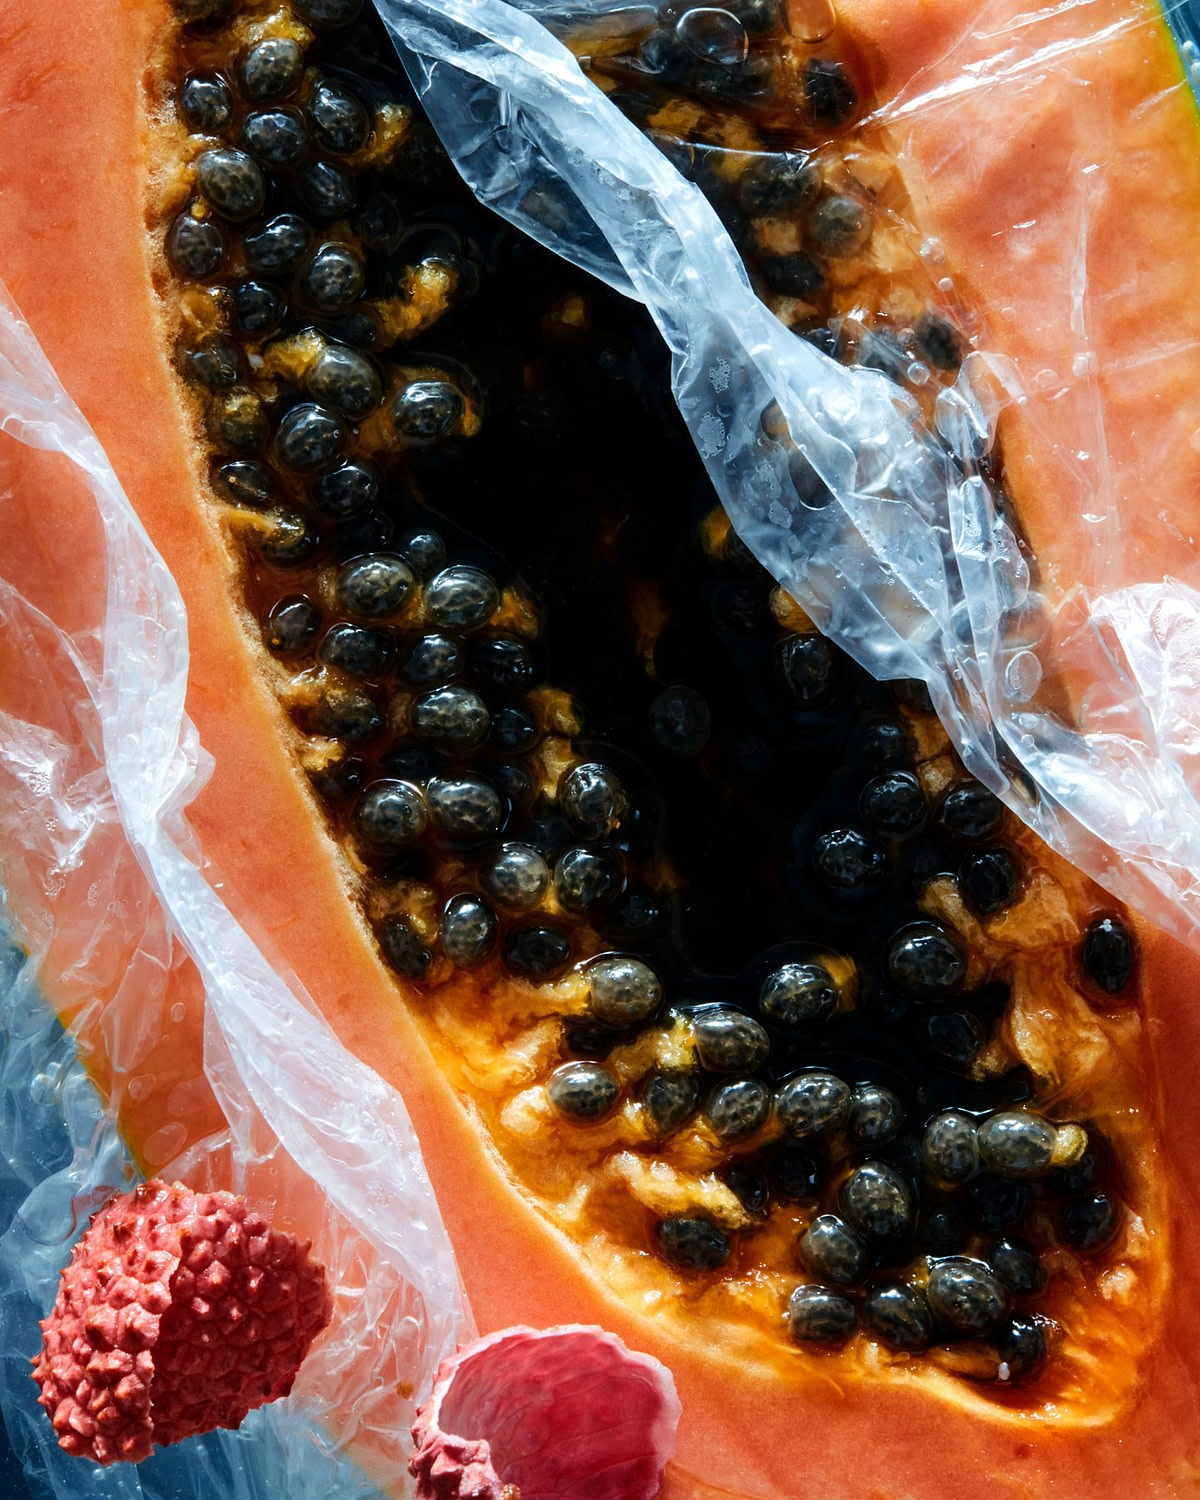 0819_Fruit_Test2587-2